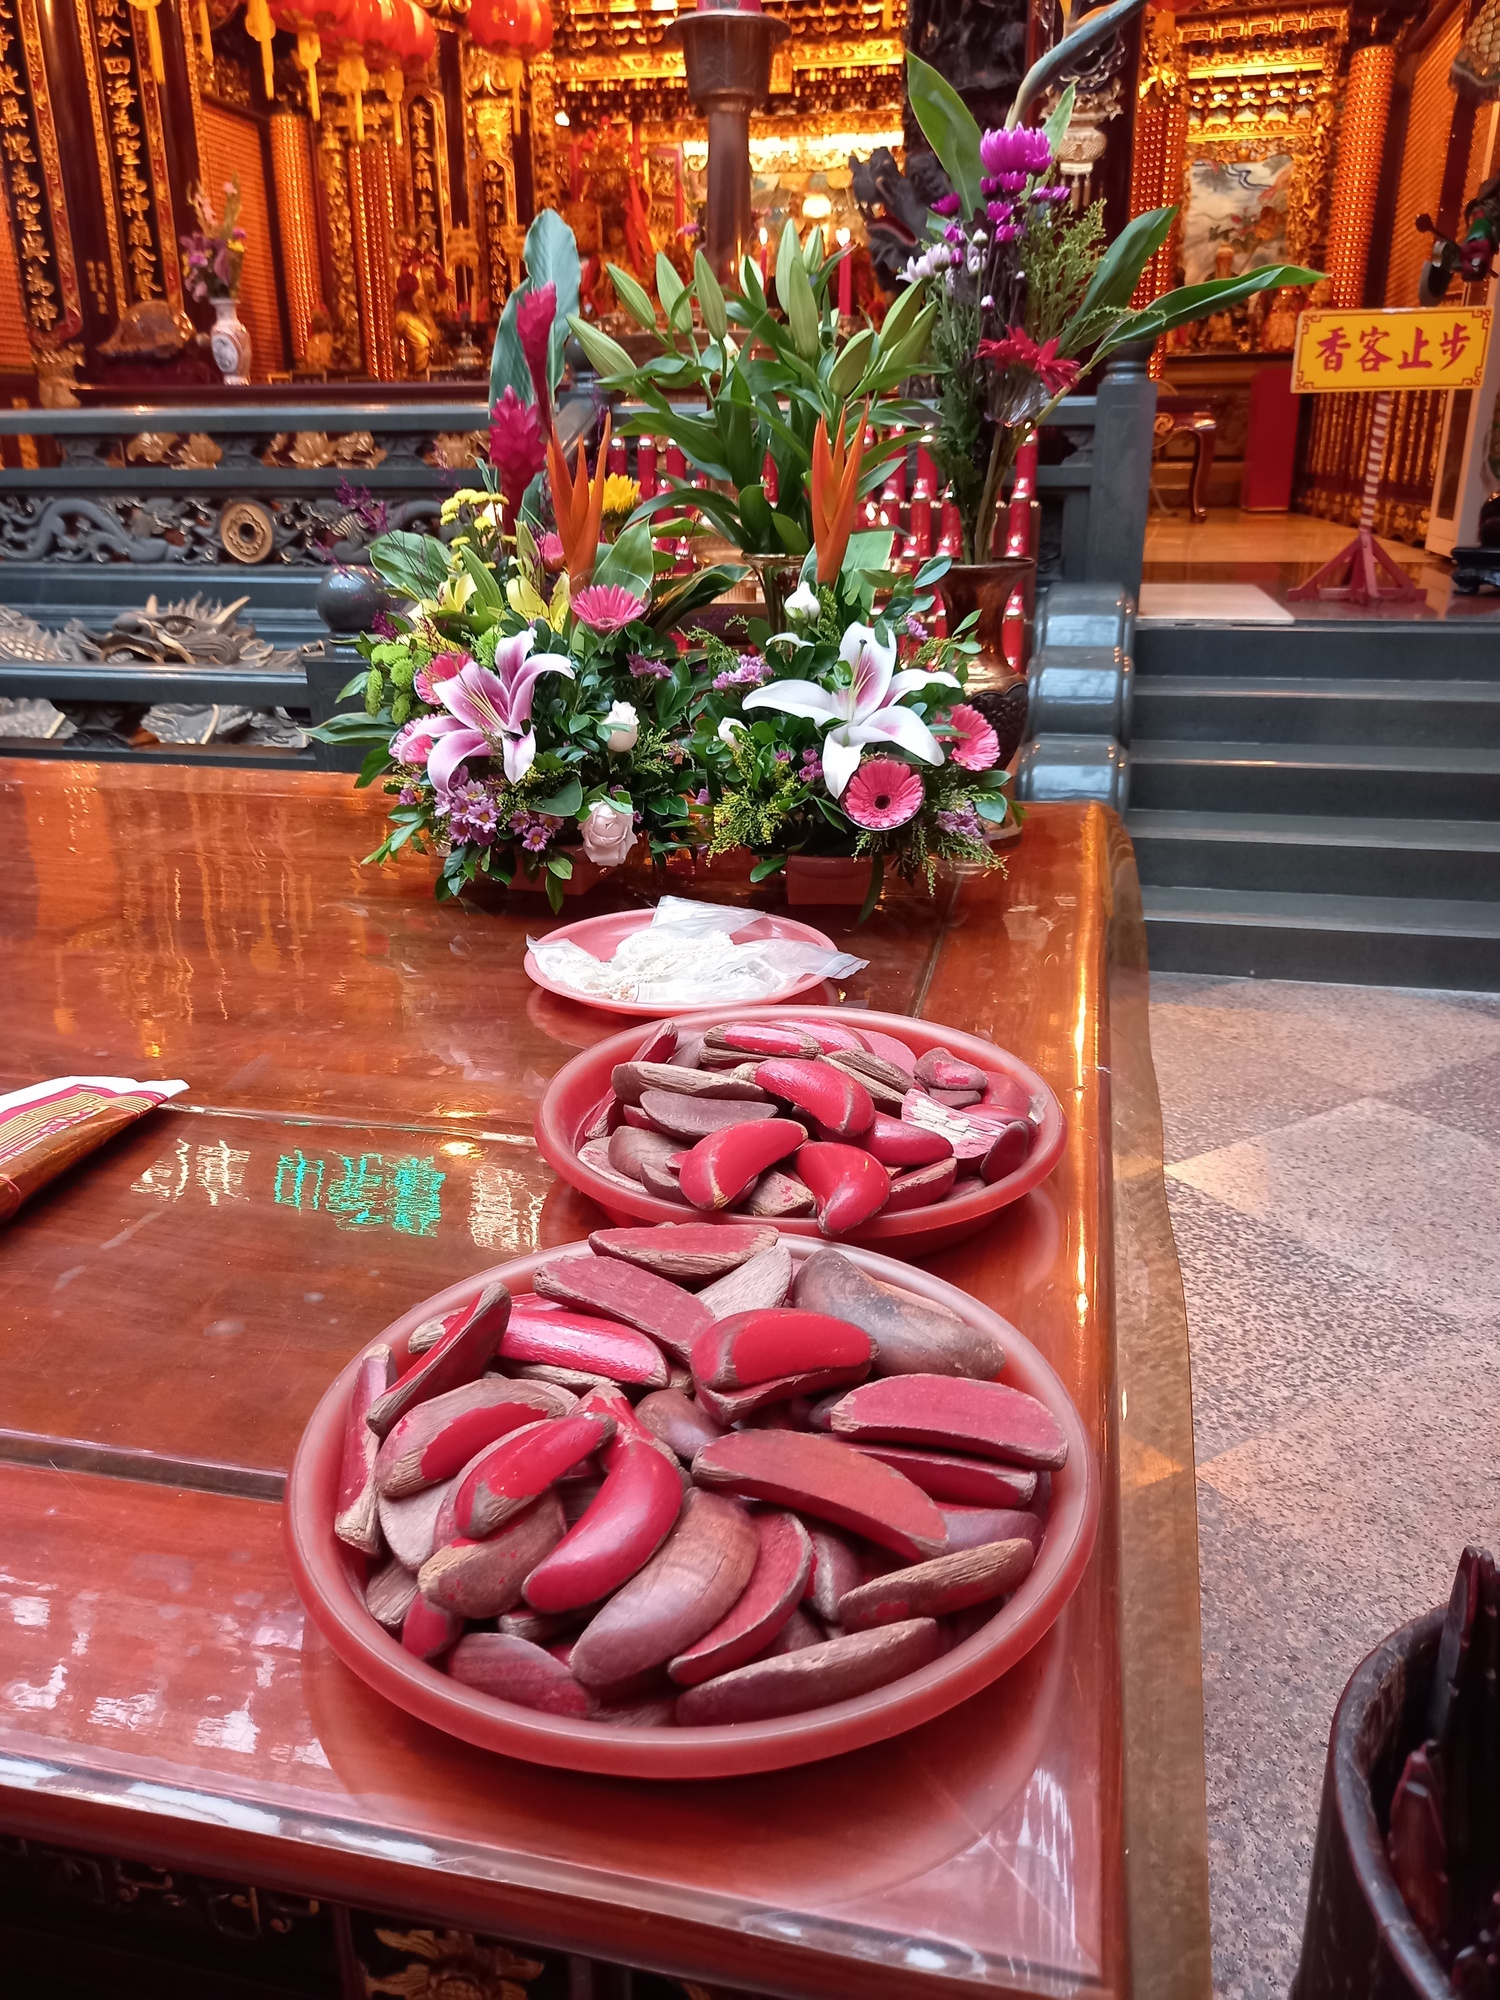 Things to do in Keelung 2021 Qing'an Temple Keelung Three Big Temples